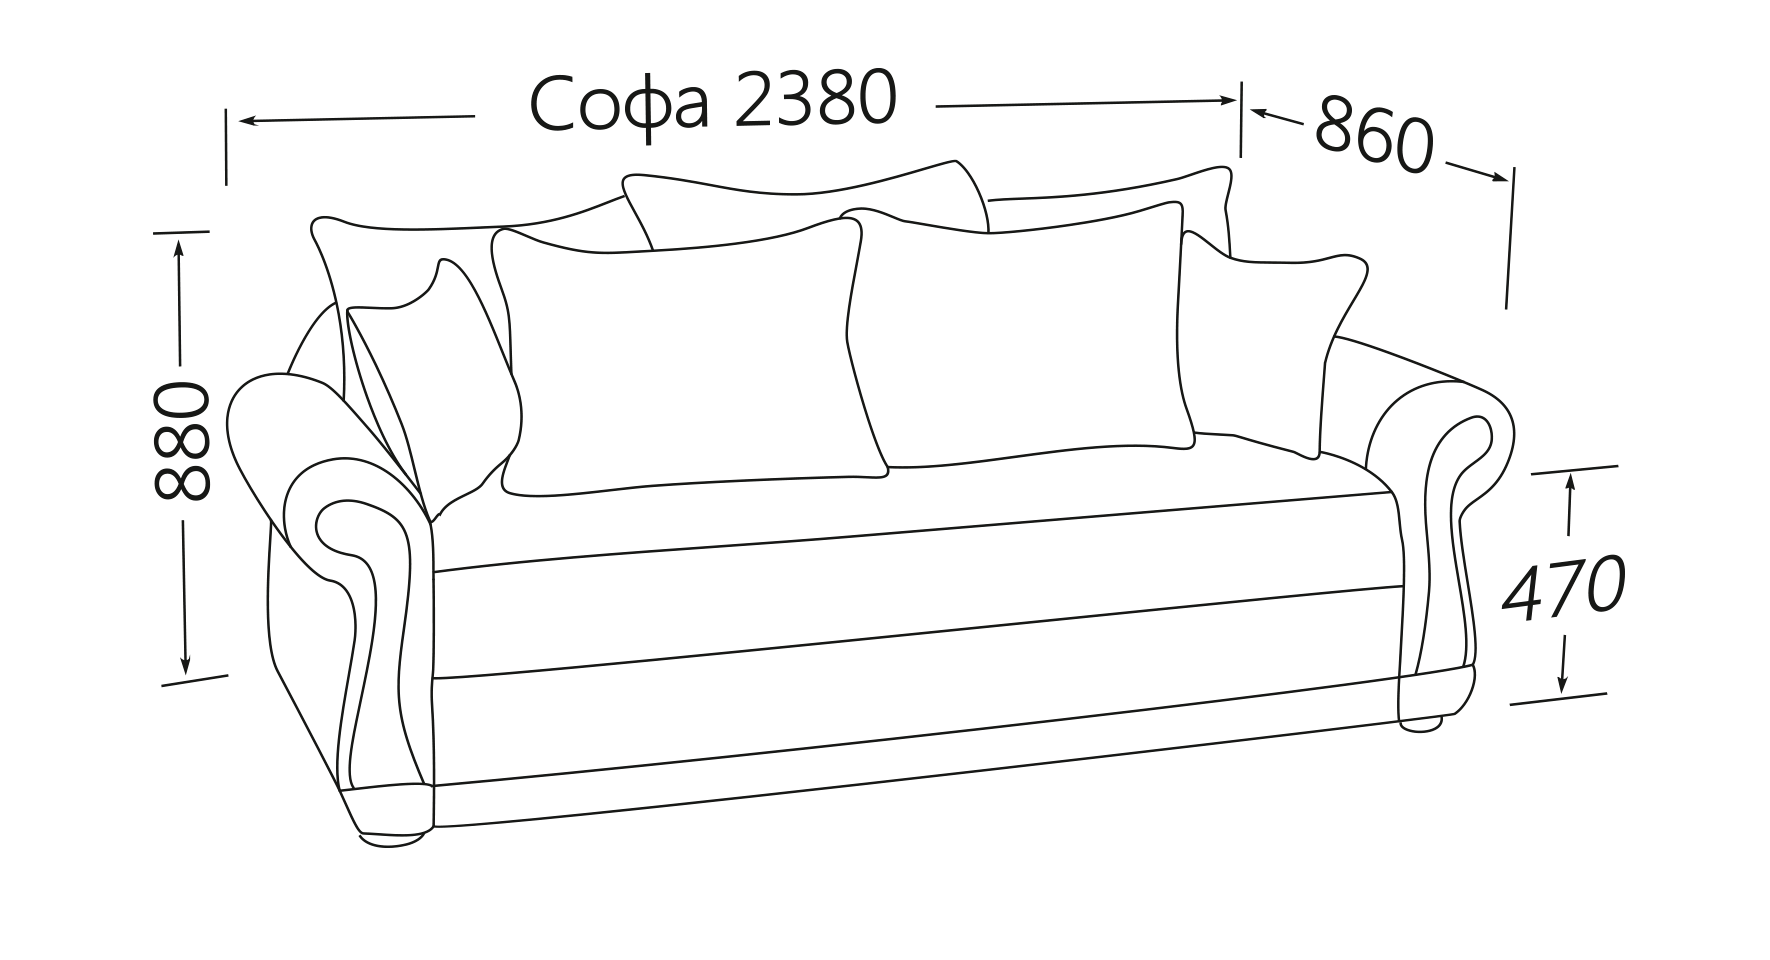 3 madrid sofa1 razmer